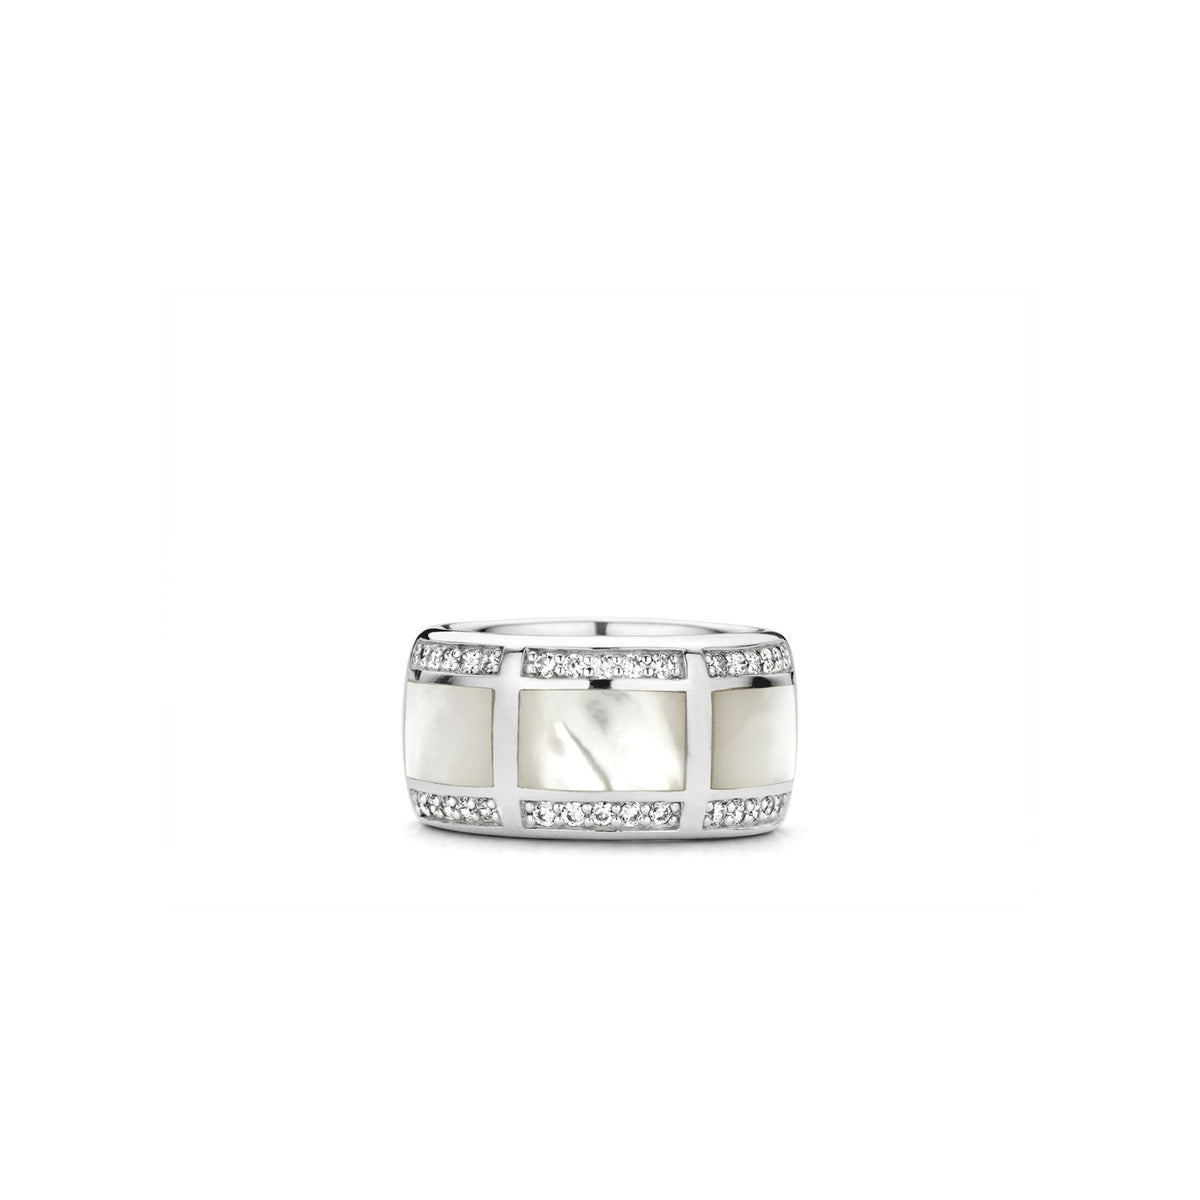 TI SENTO Sterling Silver Wide Faux Mother of Pearl Ring with Cubic Zirconia Edges